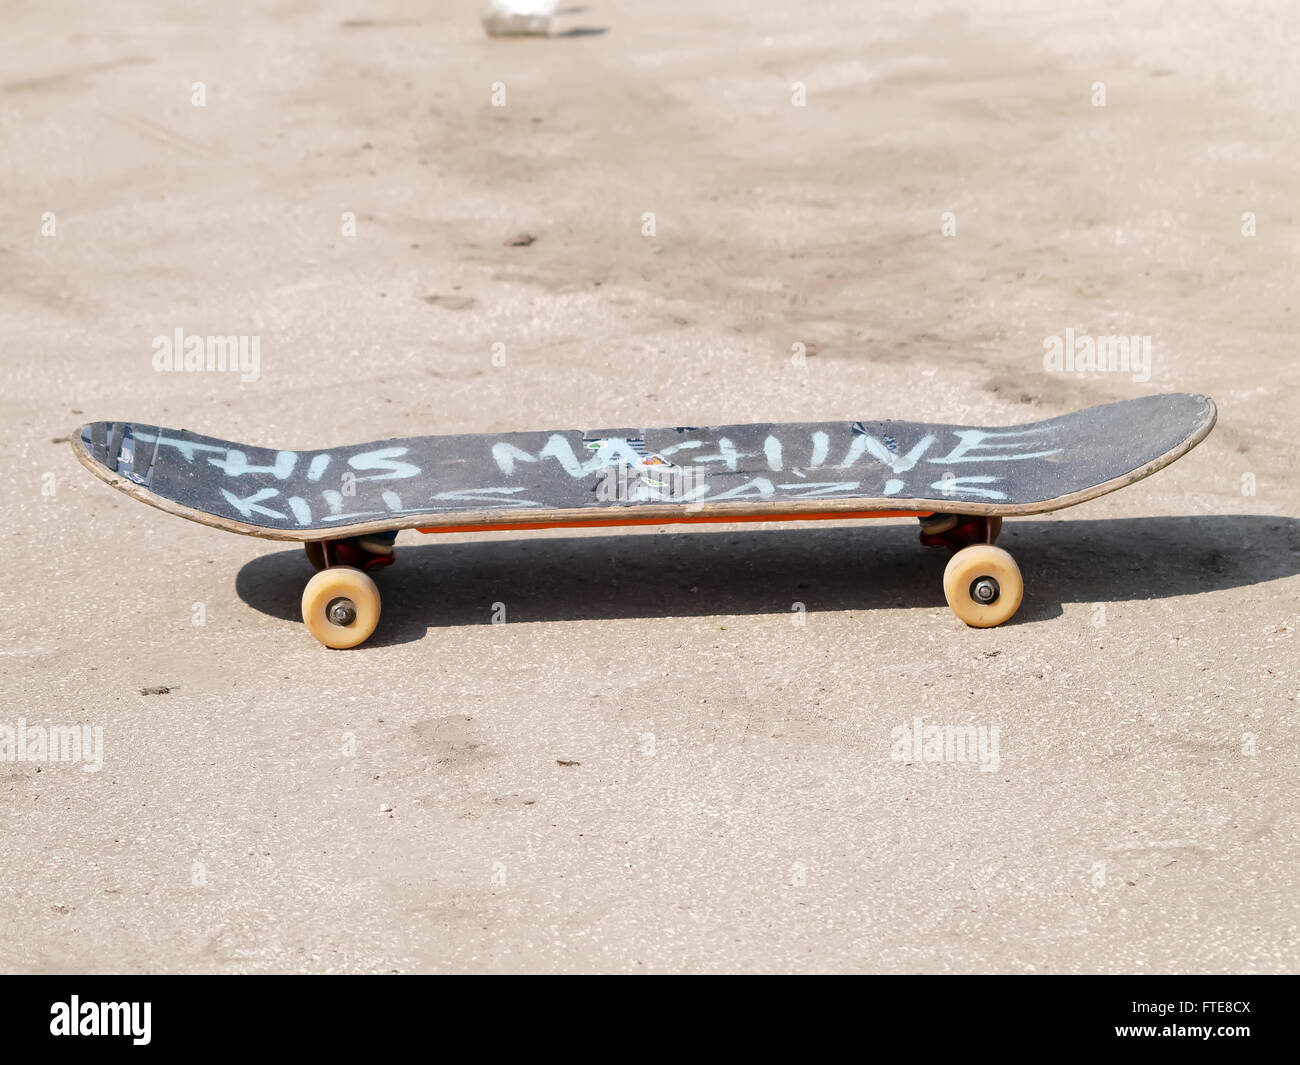 c85cab2762 old used wooden skateboard Stock Photo: 101117546 - Alamy